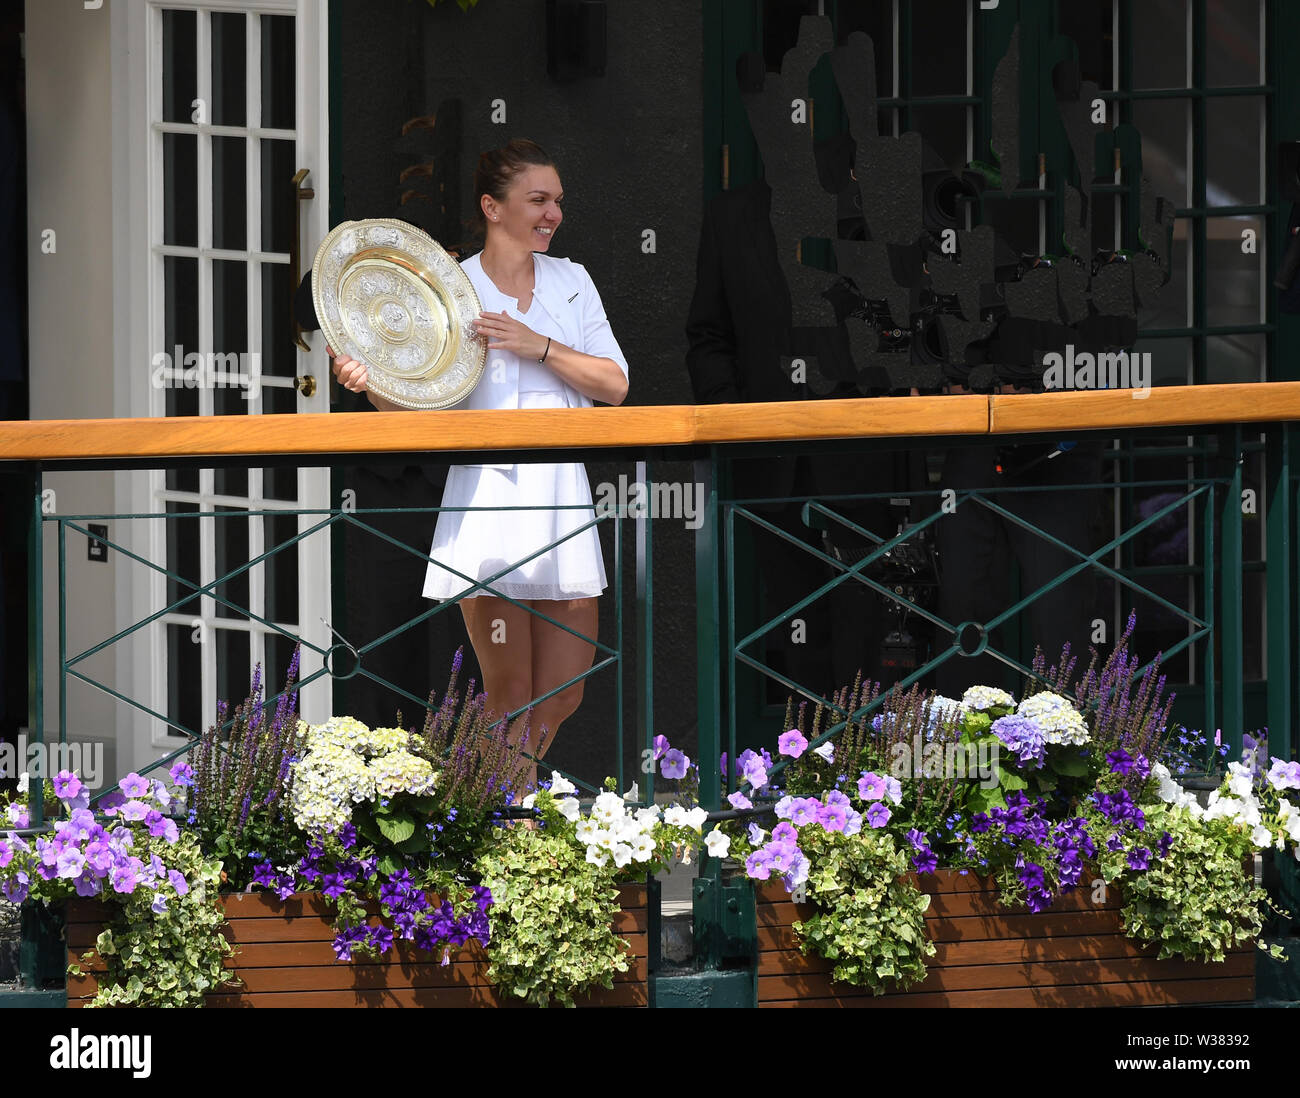 London, UK. 13th July, 2019. The Championships Wimbledon 2019 13072019 Simona Halep shows the winners trophy  the Venus Rosewater Dish  to the crowds from the members balcony after she wins Ladies Singles Final Photo Roger Parker International Sports Fotos Ltd/Alamy Live News - Stock Image